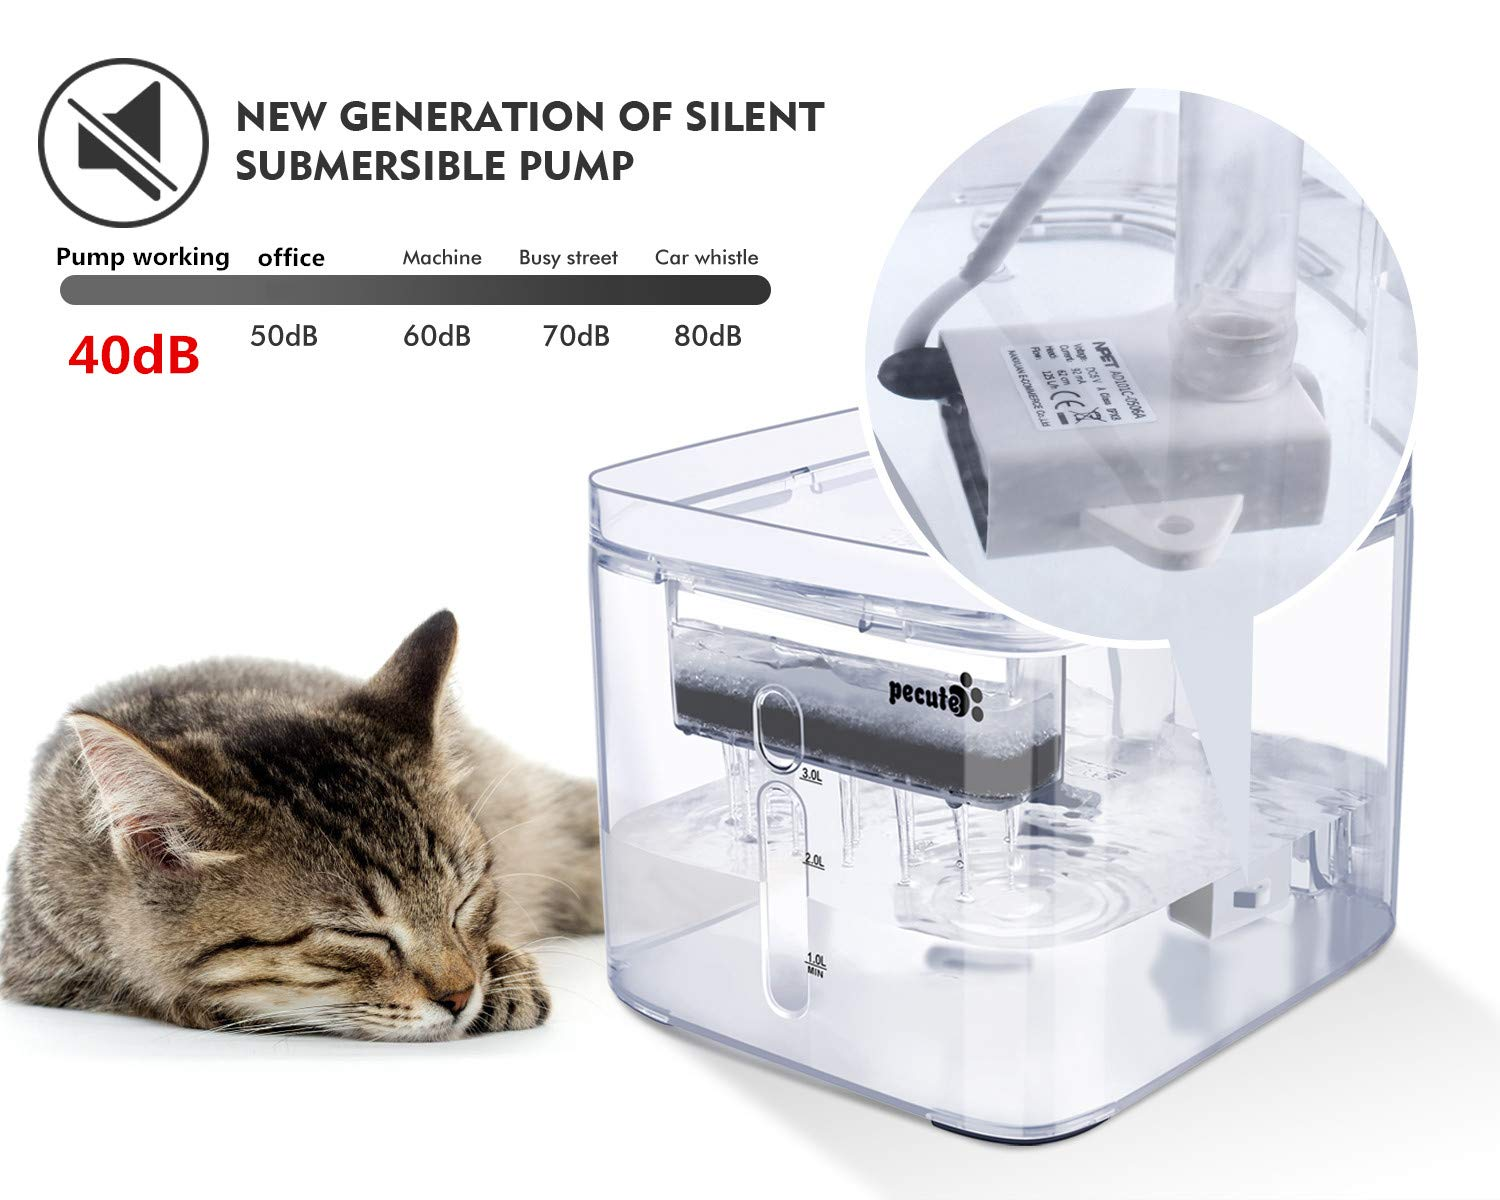 Pecute Cat Water Fountain Ultra-Quiet, 3L Large Capacity, Automatic Circulation Fully Transparent Pet Drinking Fountain, 3 Outlet Modes Great for Cats Dogs Indoor Outdoor Use (2 Reusable Filters)